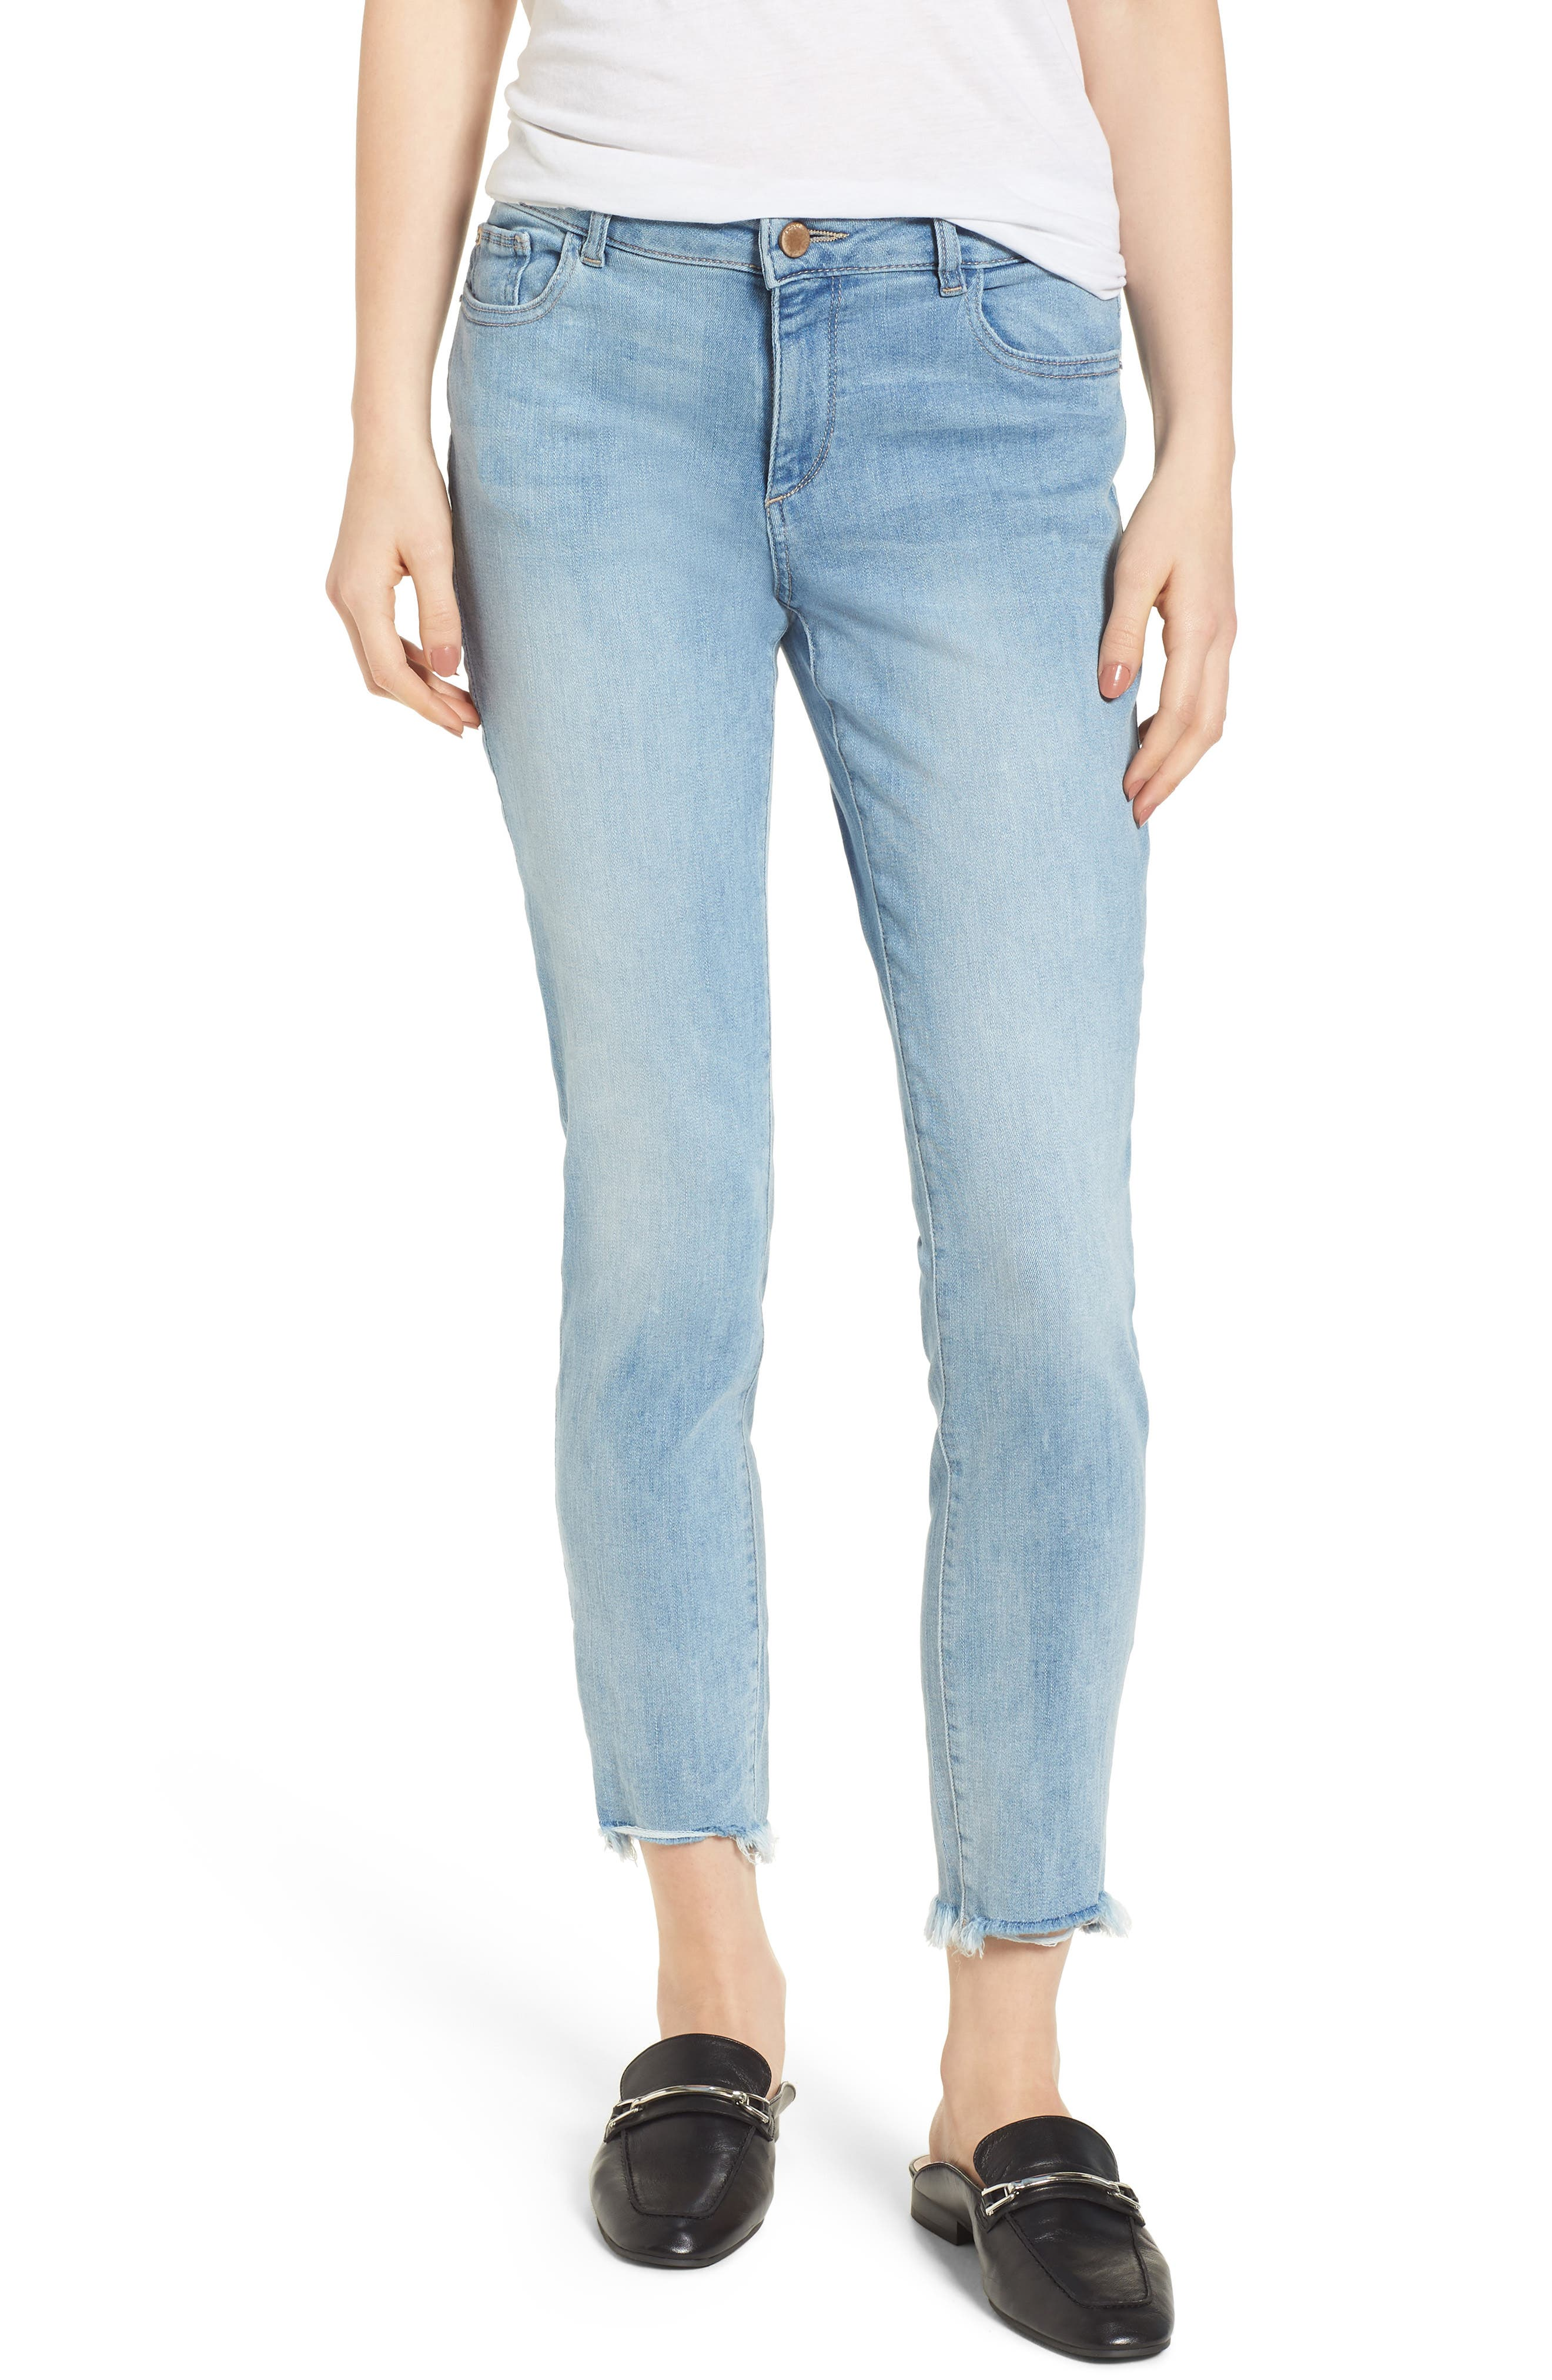 Coco Curvy Ankle Skinny Jeans,                         Main,                         color, Kelso